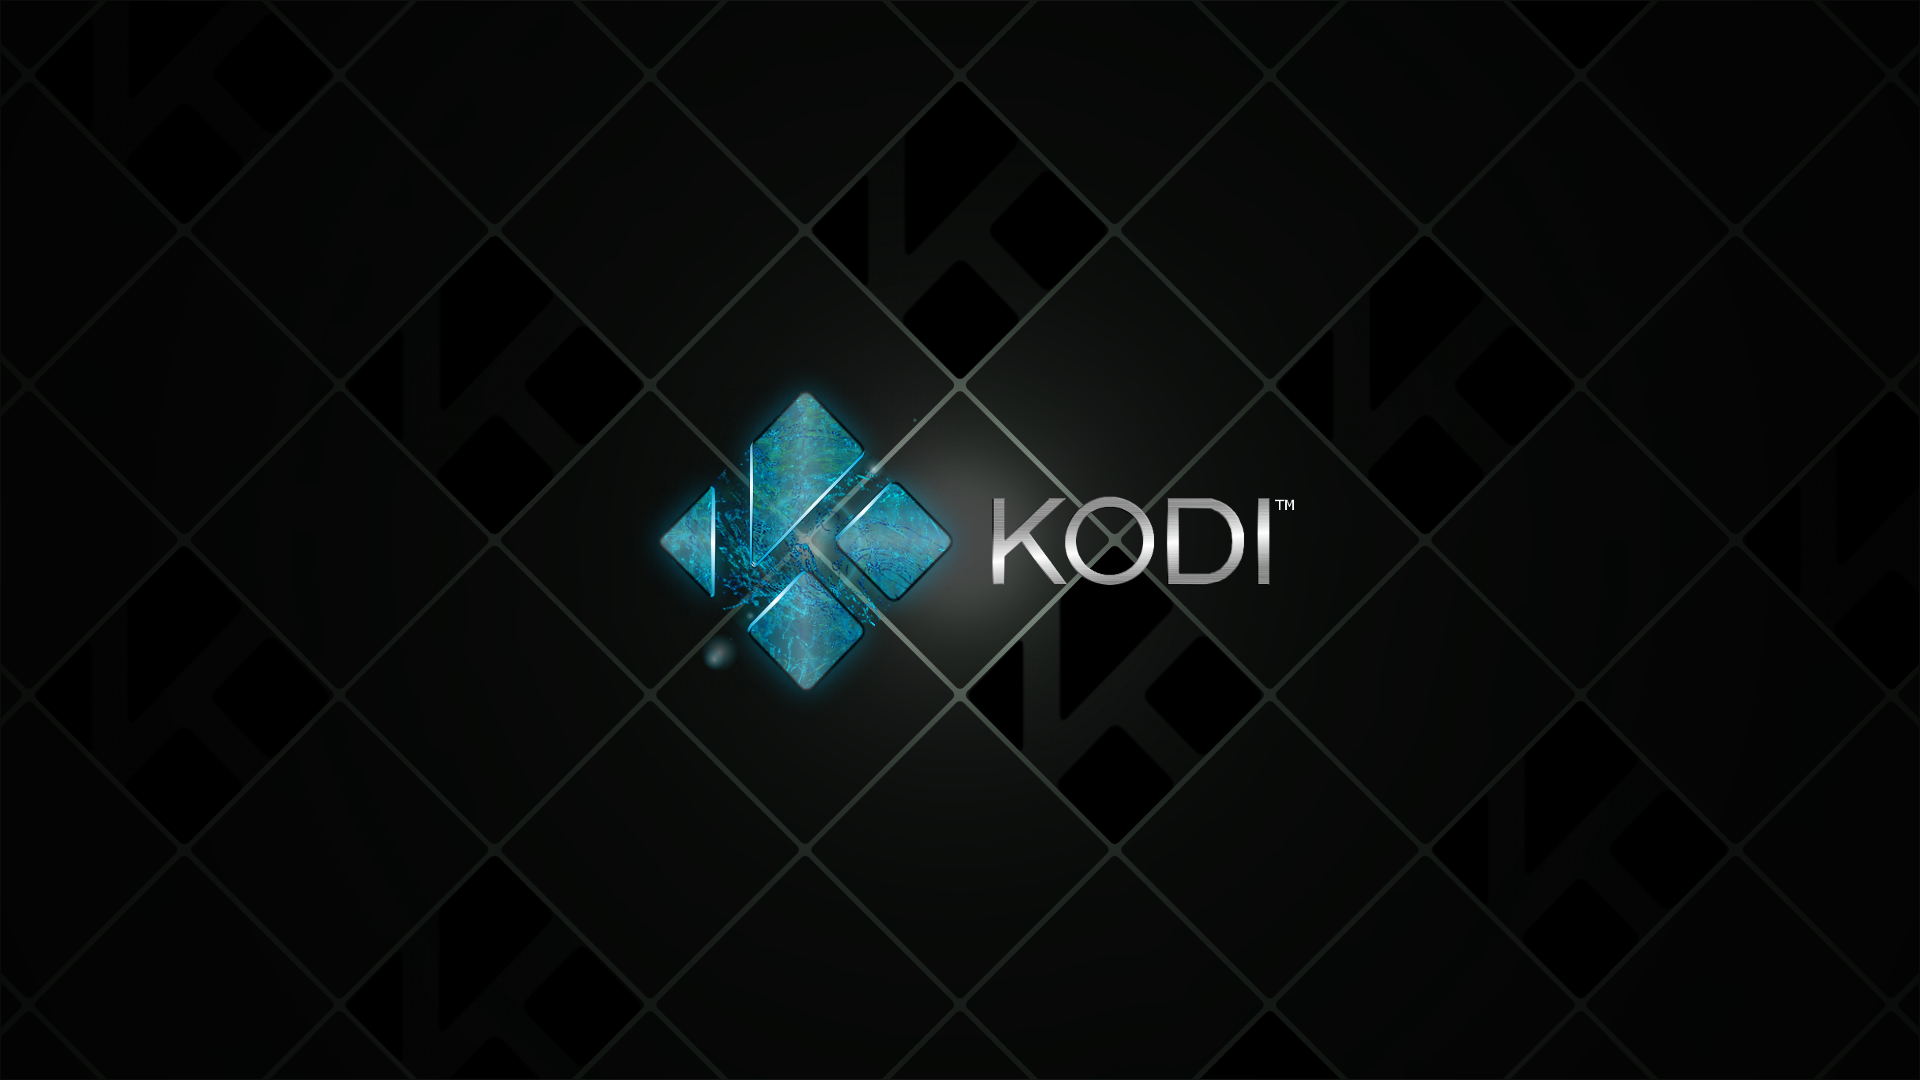 Kodi fanart and wallpaper -  Image 16315848404_a2ce6e1cb4_o Png